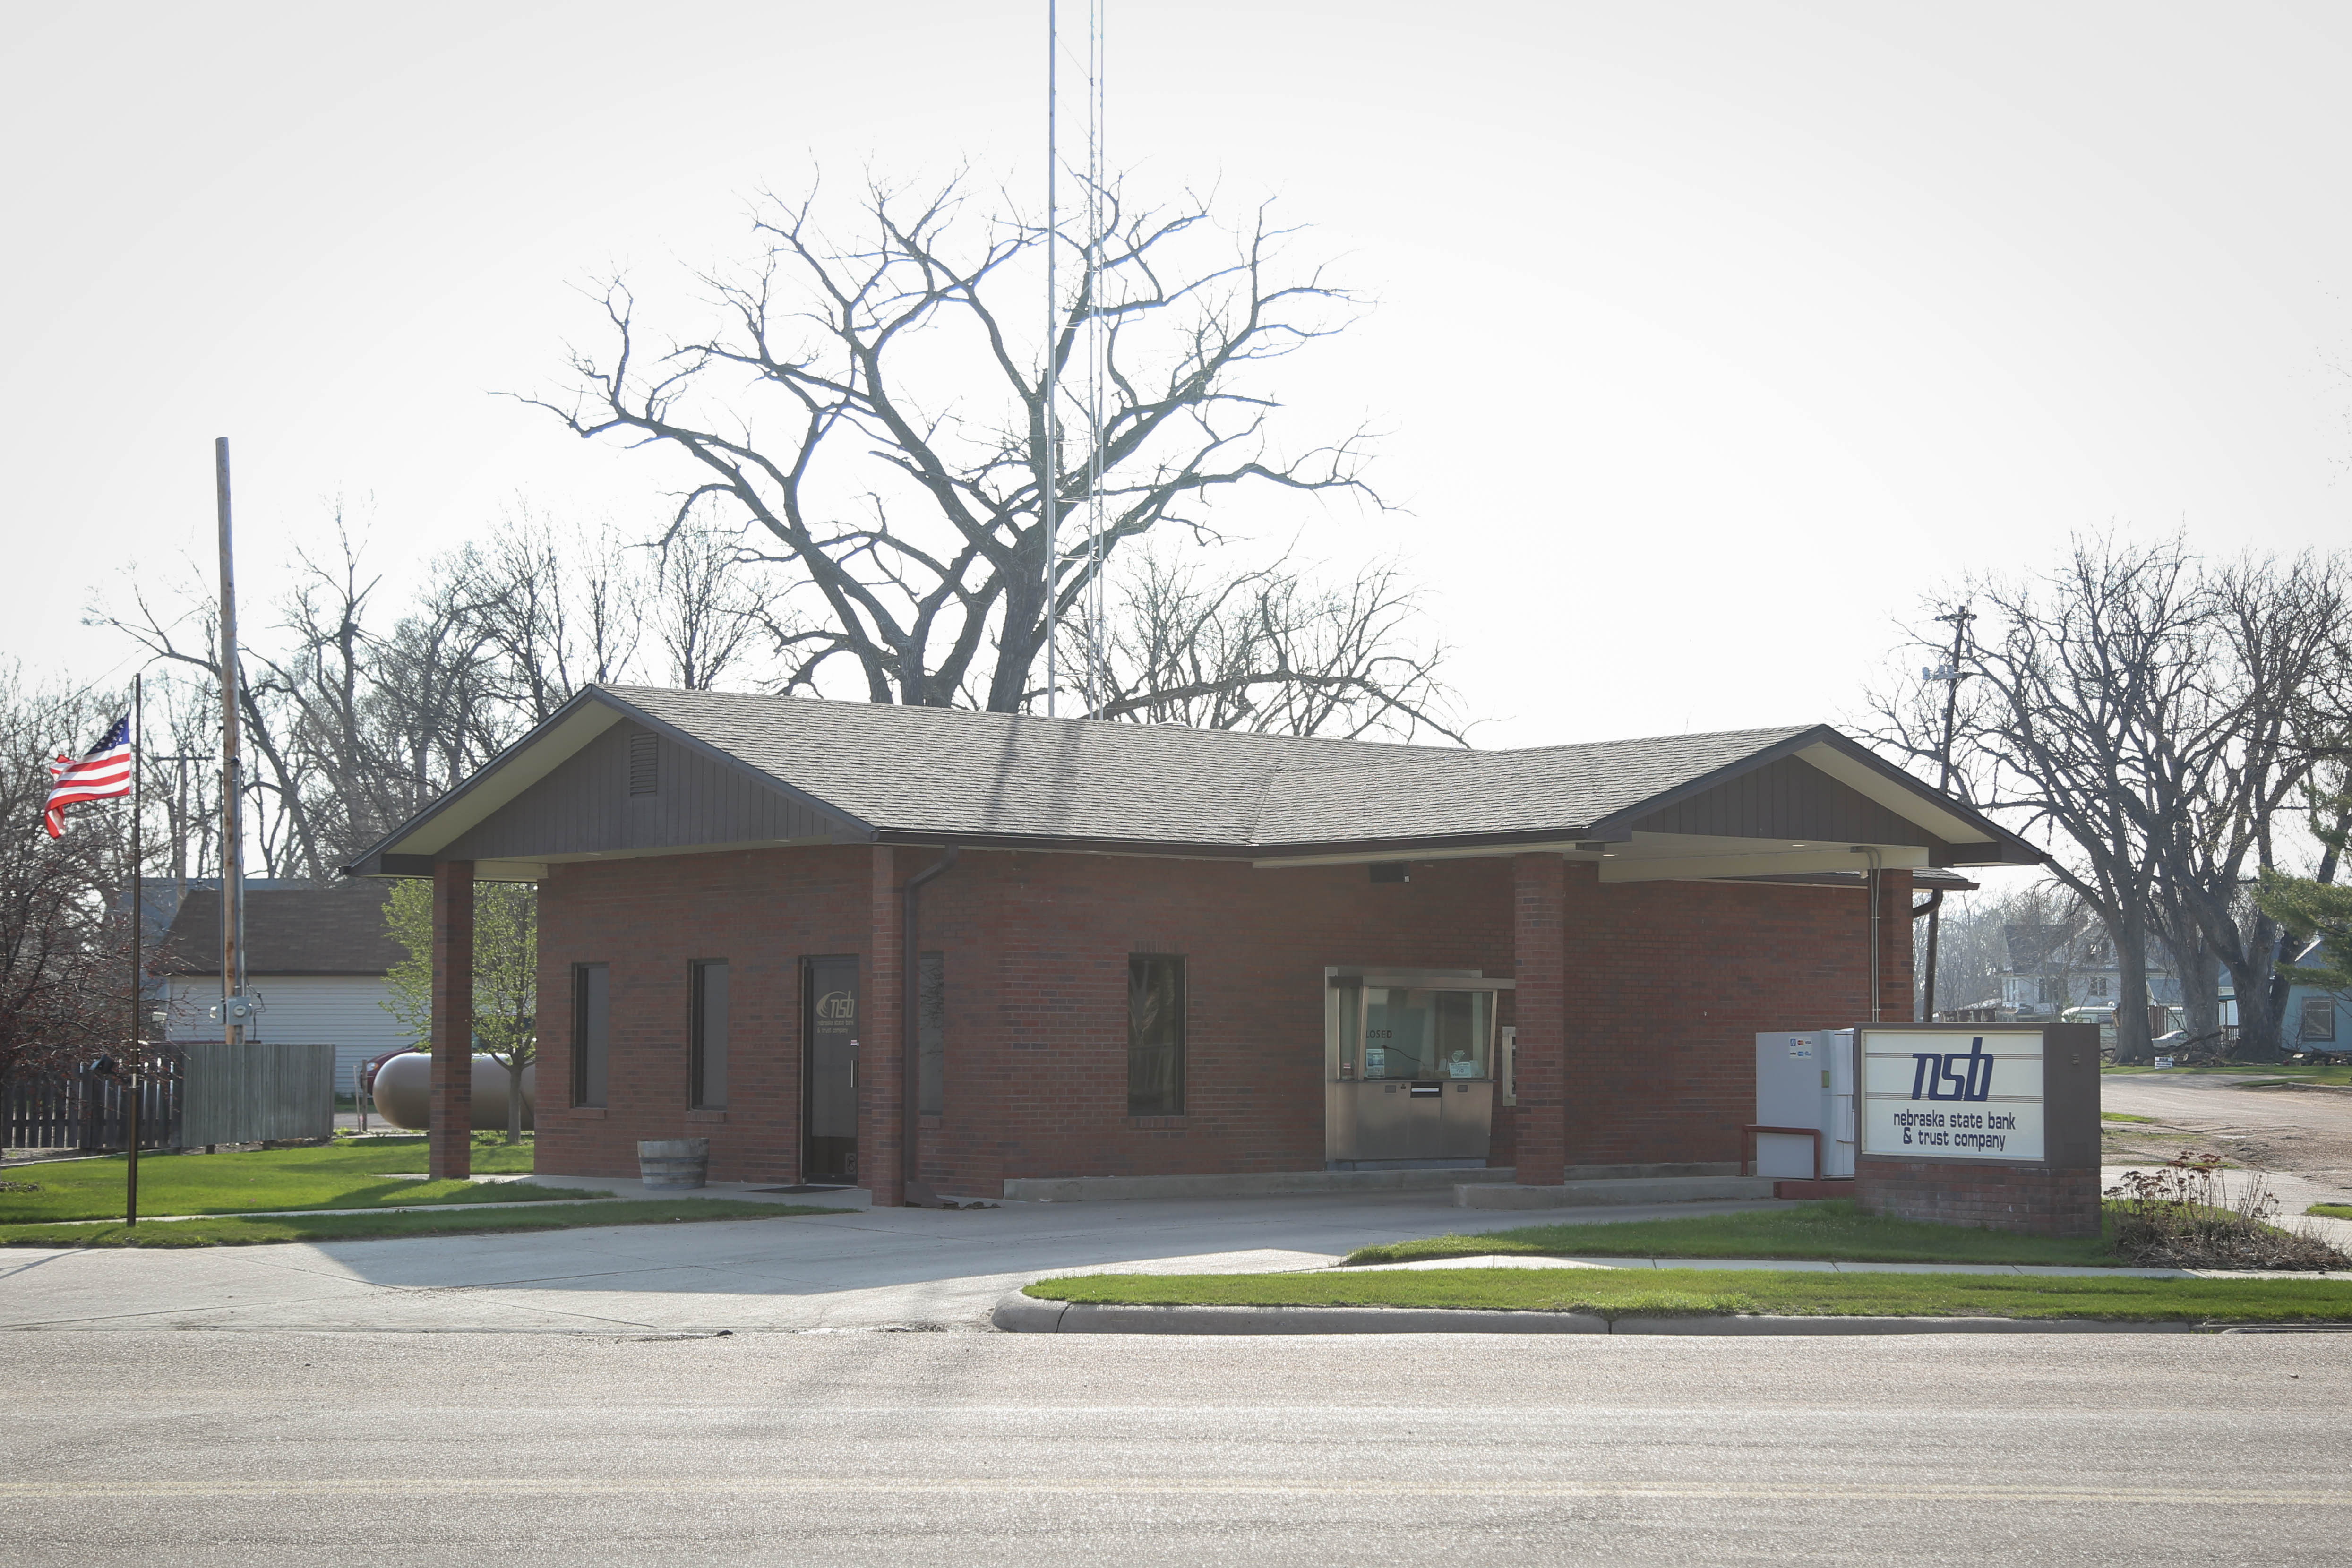 Picture of the Callaway Branch location